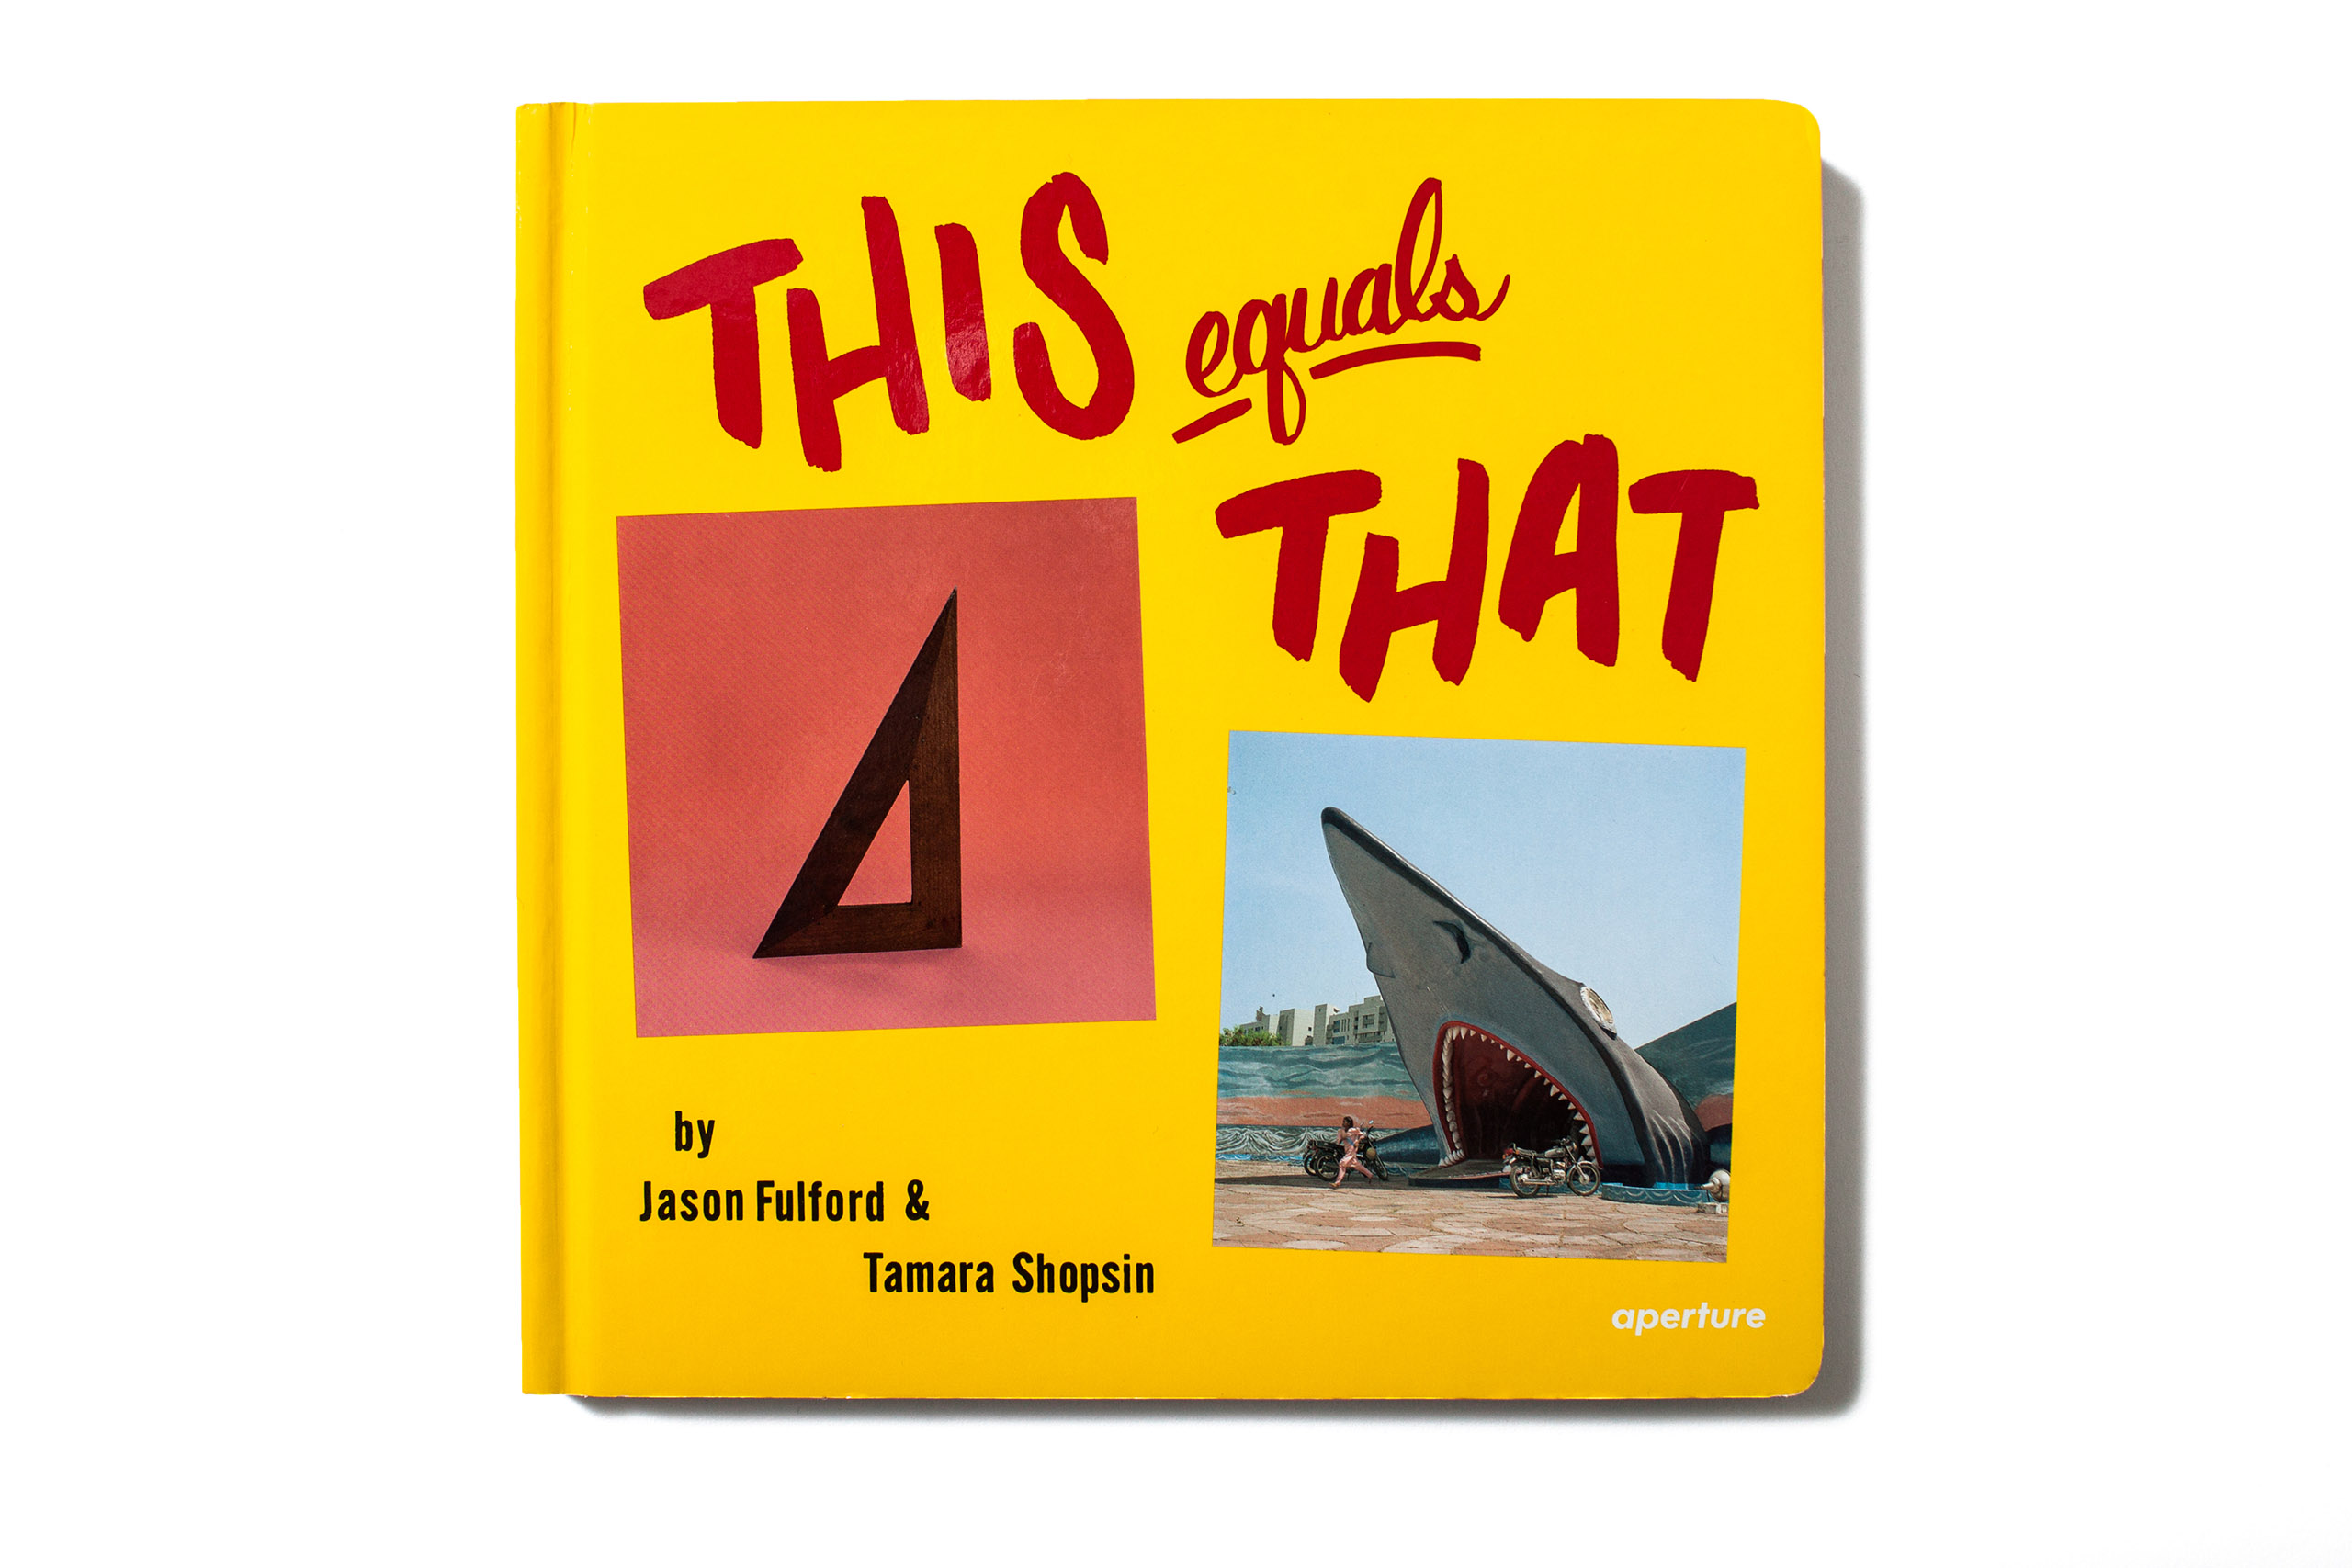 """<a href=""""http://aperture.org/shop/this-equals-that""""><i><b>                                   This Equals That                                   </i></b></a> by Jason Fulford and Tamara Shopsin, published by                                   Aperture, selected by Aaron Schuman, photographer, writer, curator, and the editor of <i>SeeSaw </i> Magazine"""